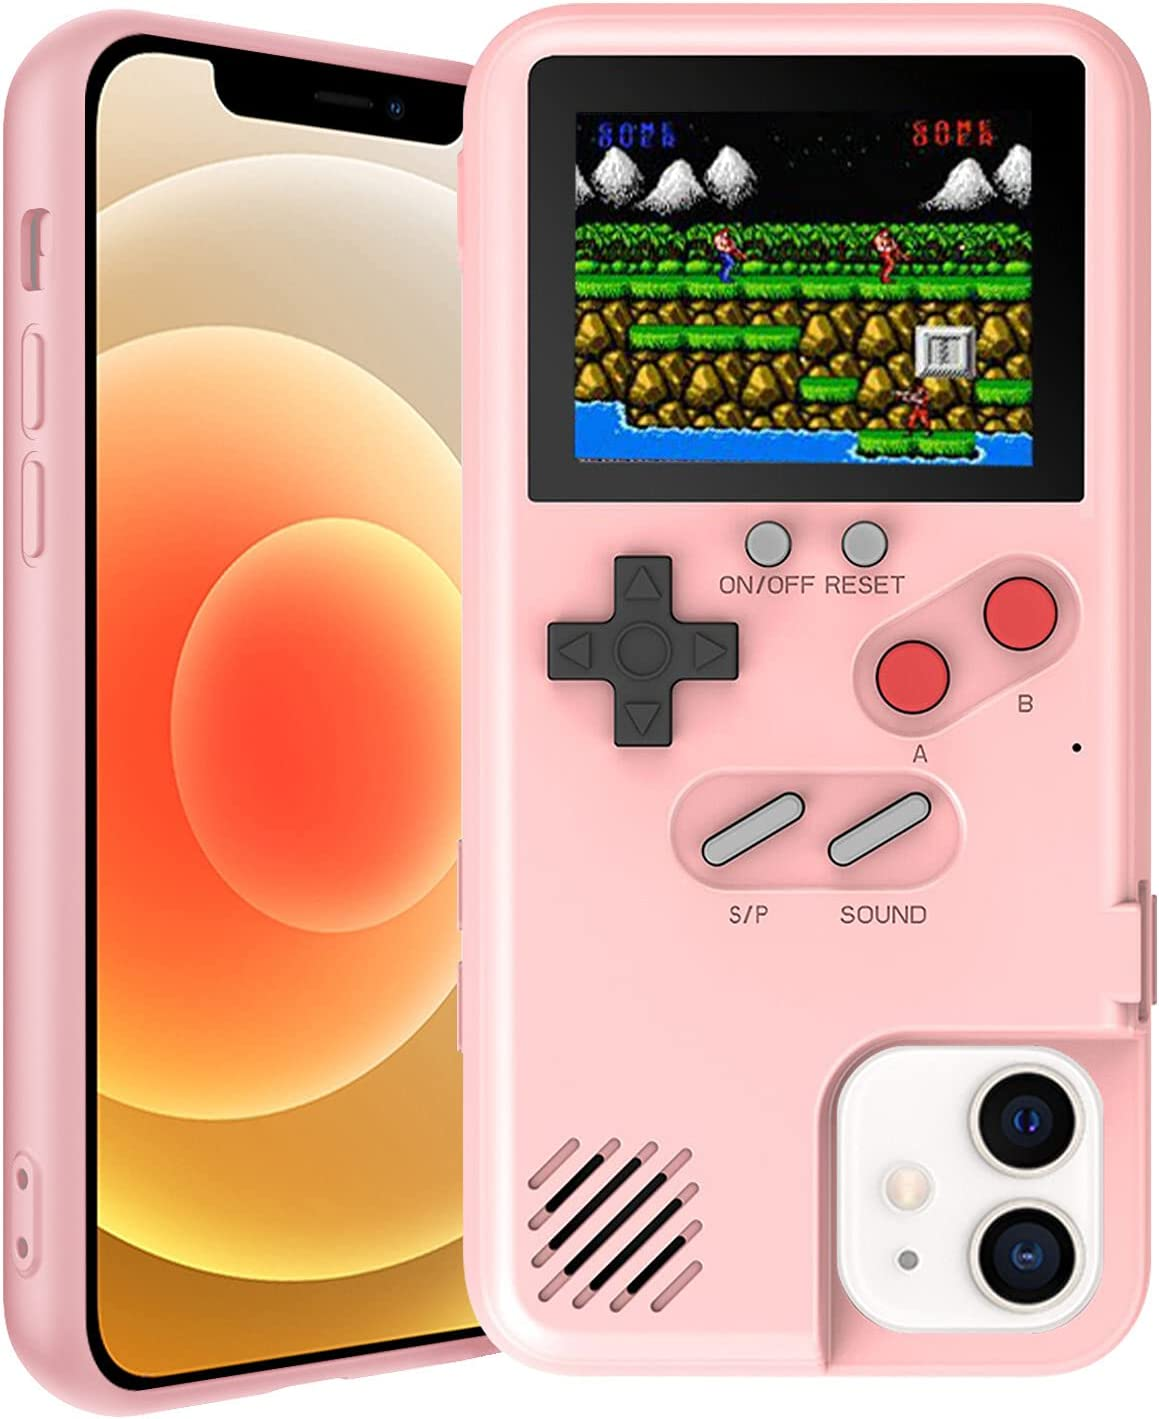 Gameboy Case for iPhone, Autbye Retro 3D Phone Case Game Console with 36 Classic Game, Color Display Shockproof Video Game Phone Case for iPhone(for iPhone 6P/7P/8P, Pink)